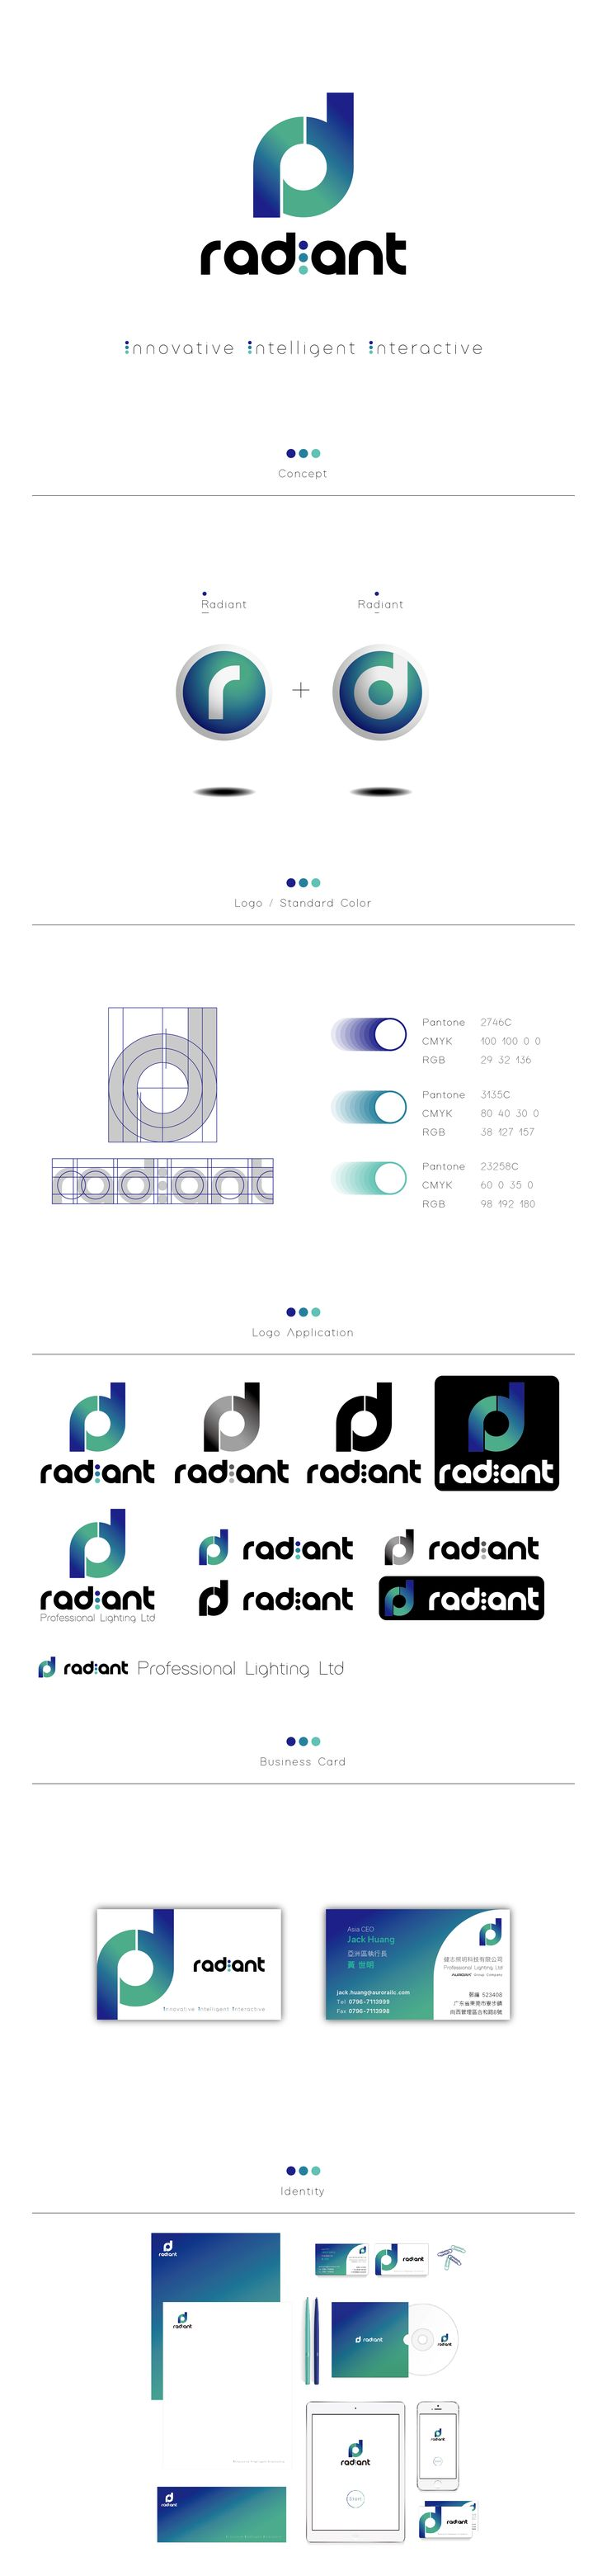 Radiant-Logo/CI Design-2016